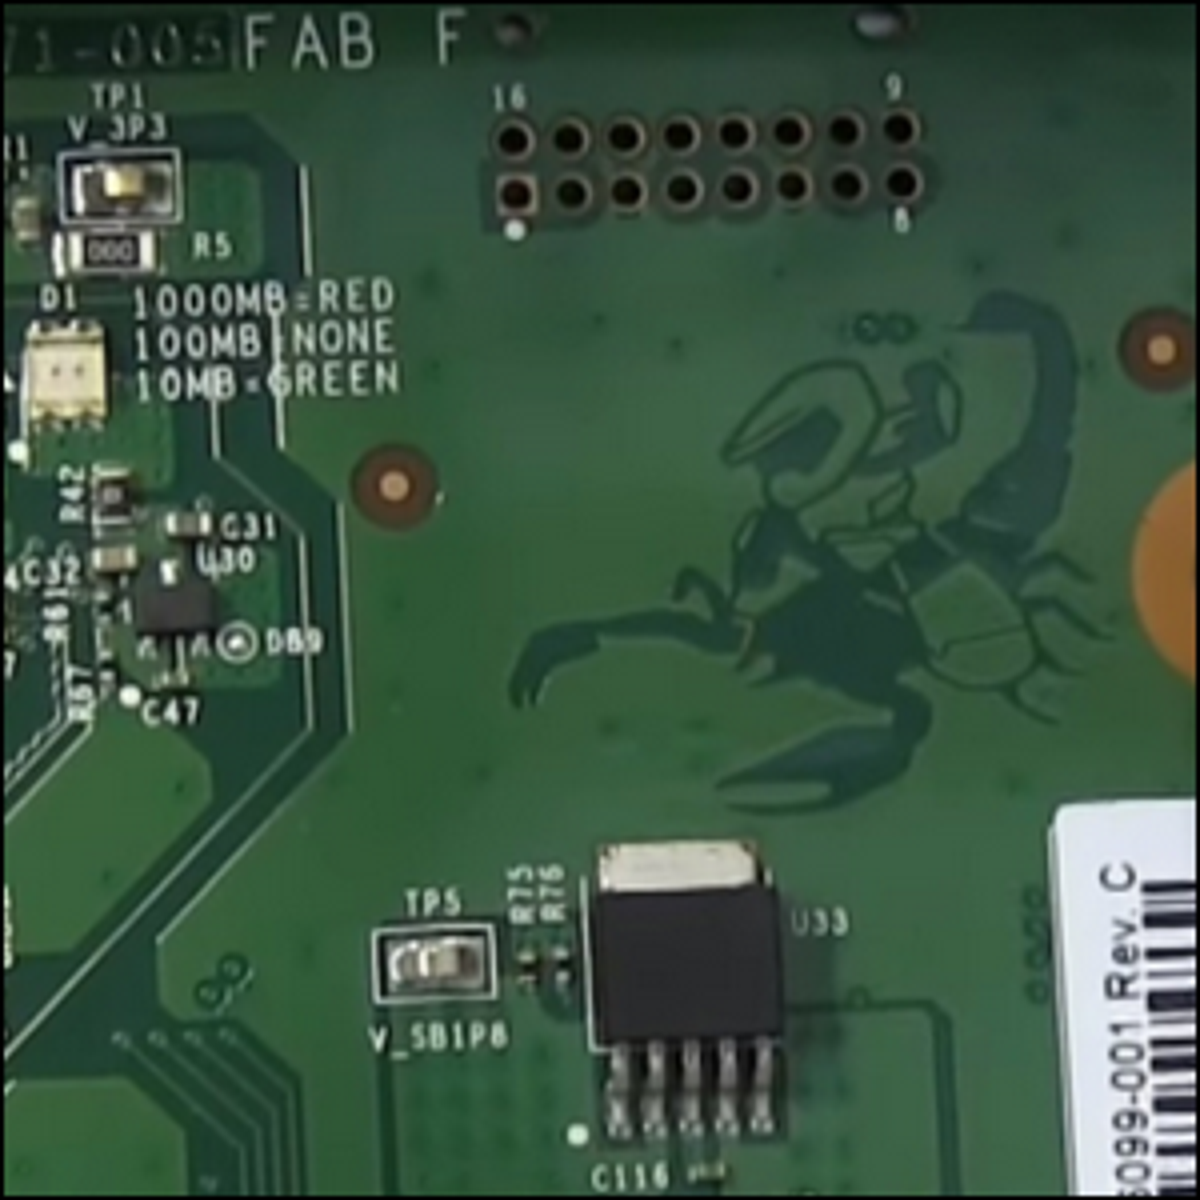 An image of Master Chief riding a scorpion etched on the motherboard of an Xbox One X.